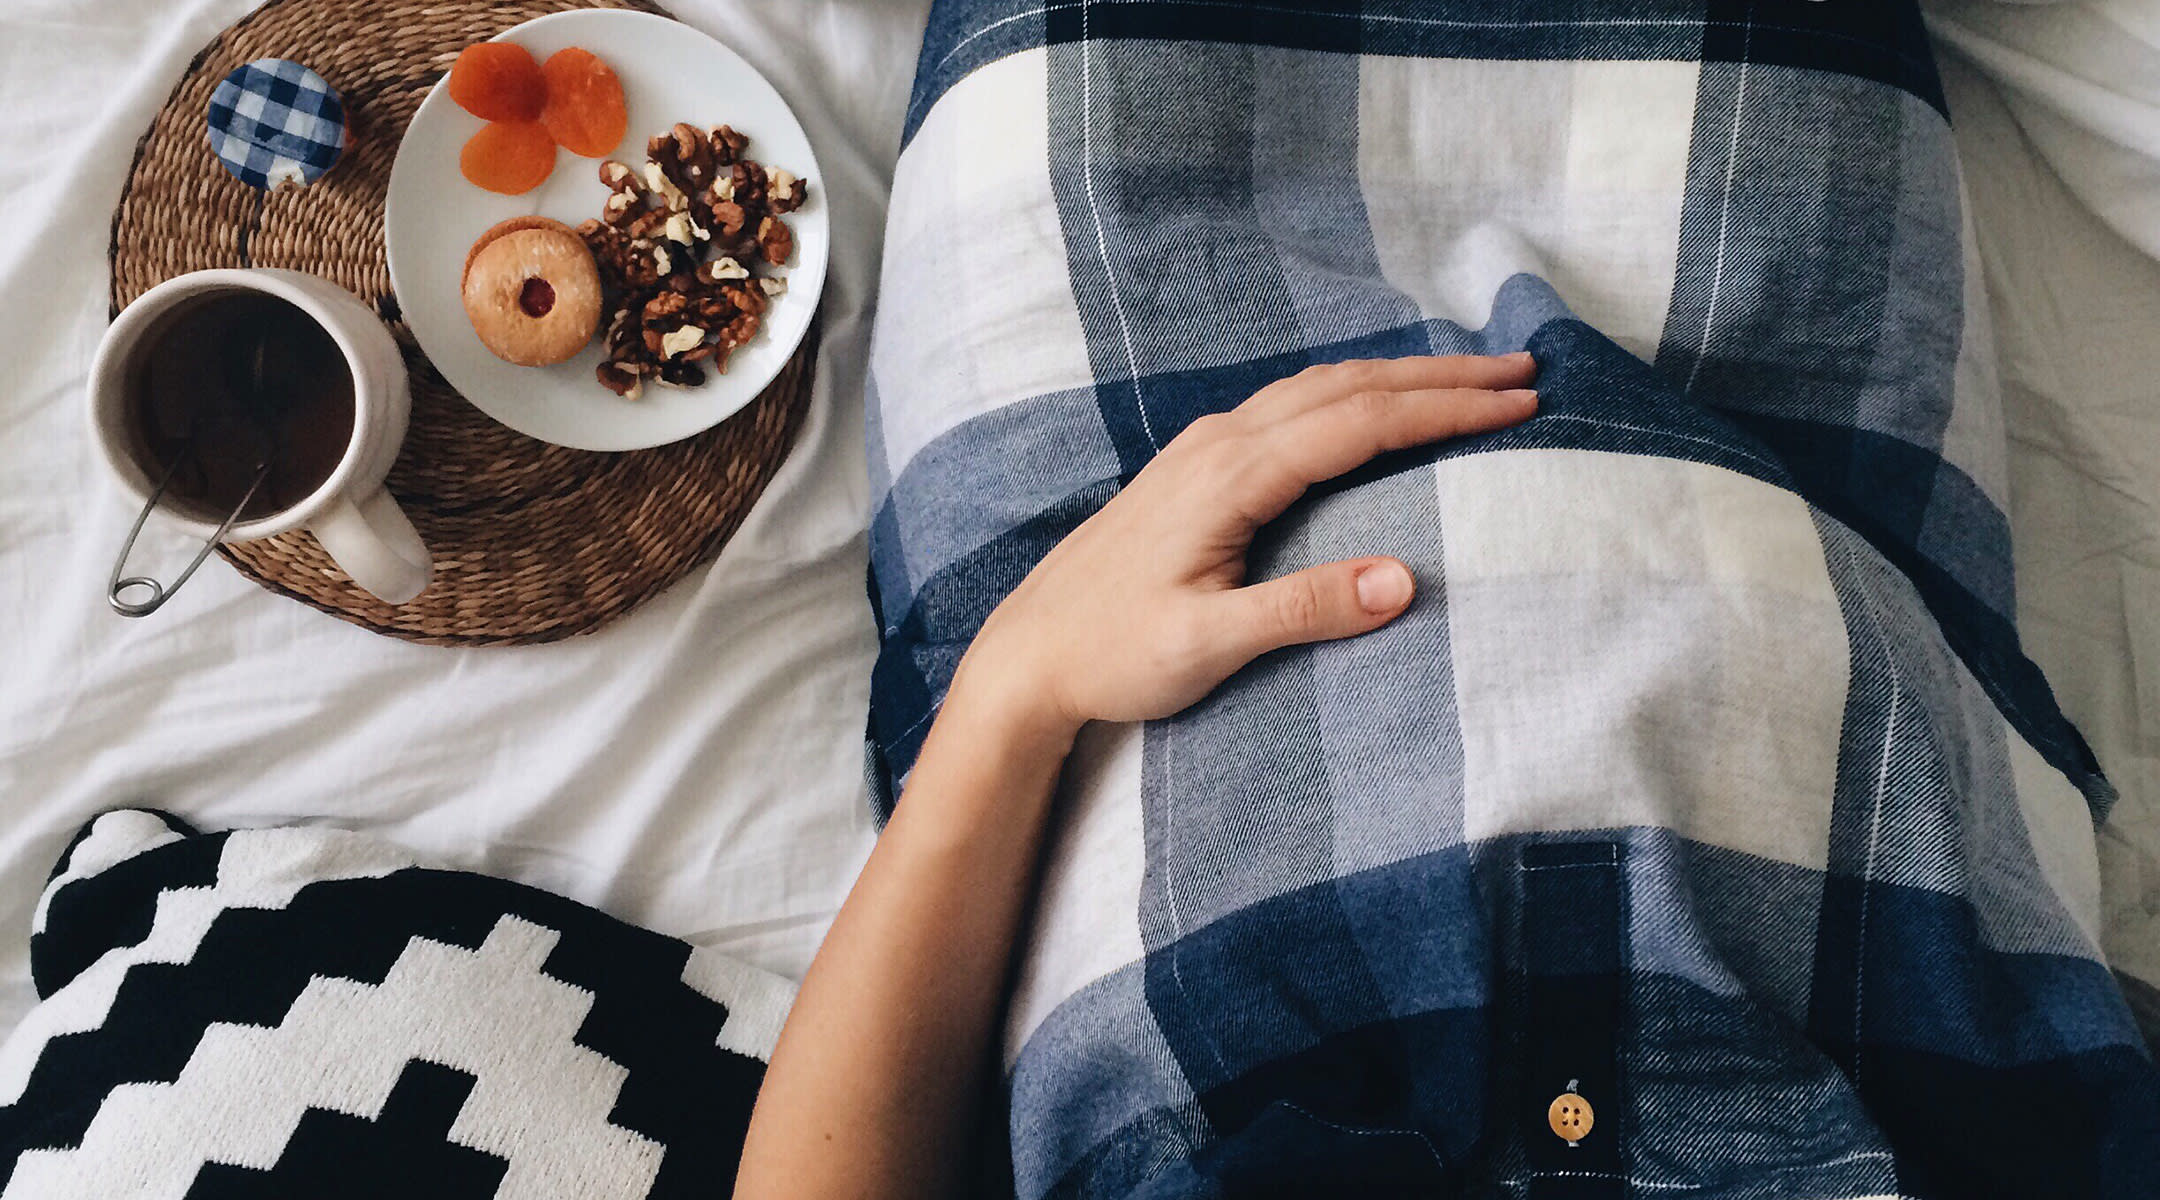 pregnant woman in bed with plate of food